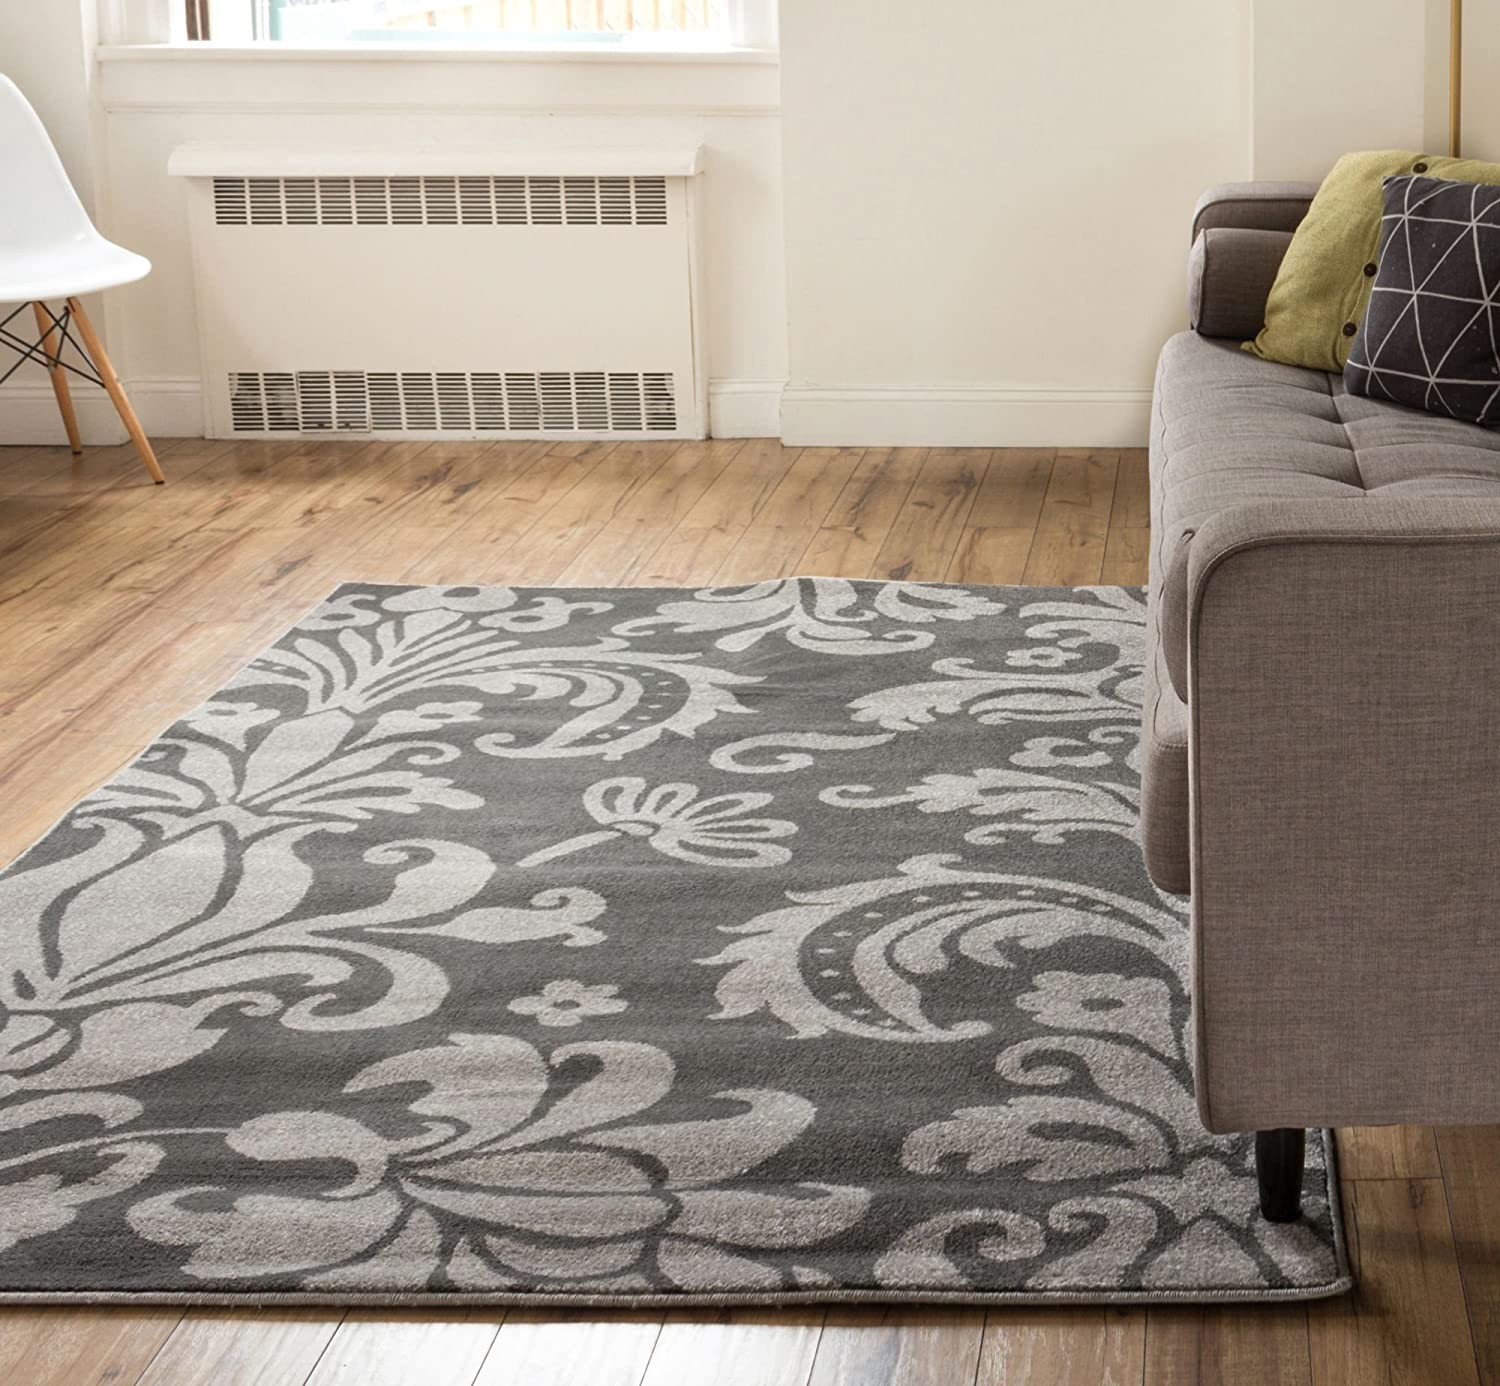 Amazon Com Vavu Damask Light Grey Charcoal Floral Modern Area Rug 3x5 3 3 X 4 7 Modern Oriental Classic Soft Pile Contemporary Carpet Thick Plush Stain Fade Resistant Easy Clean Bedroom Living